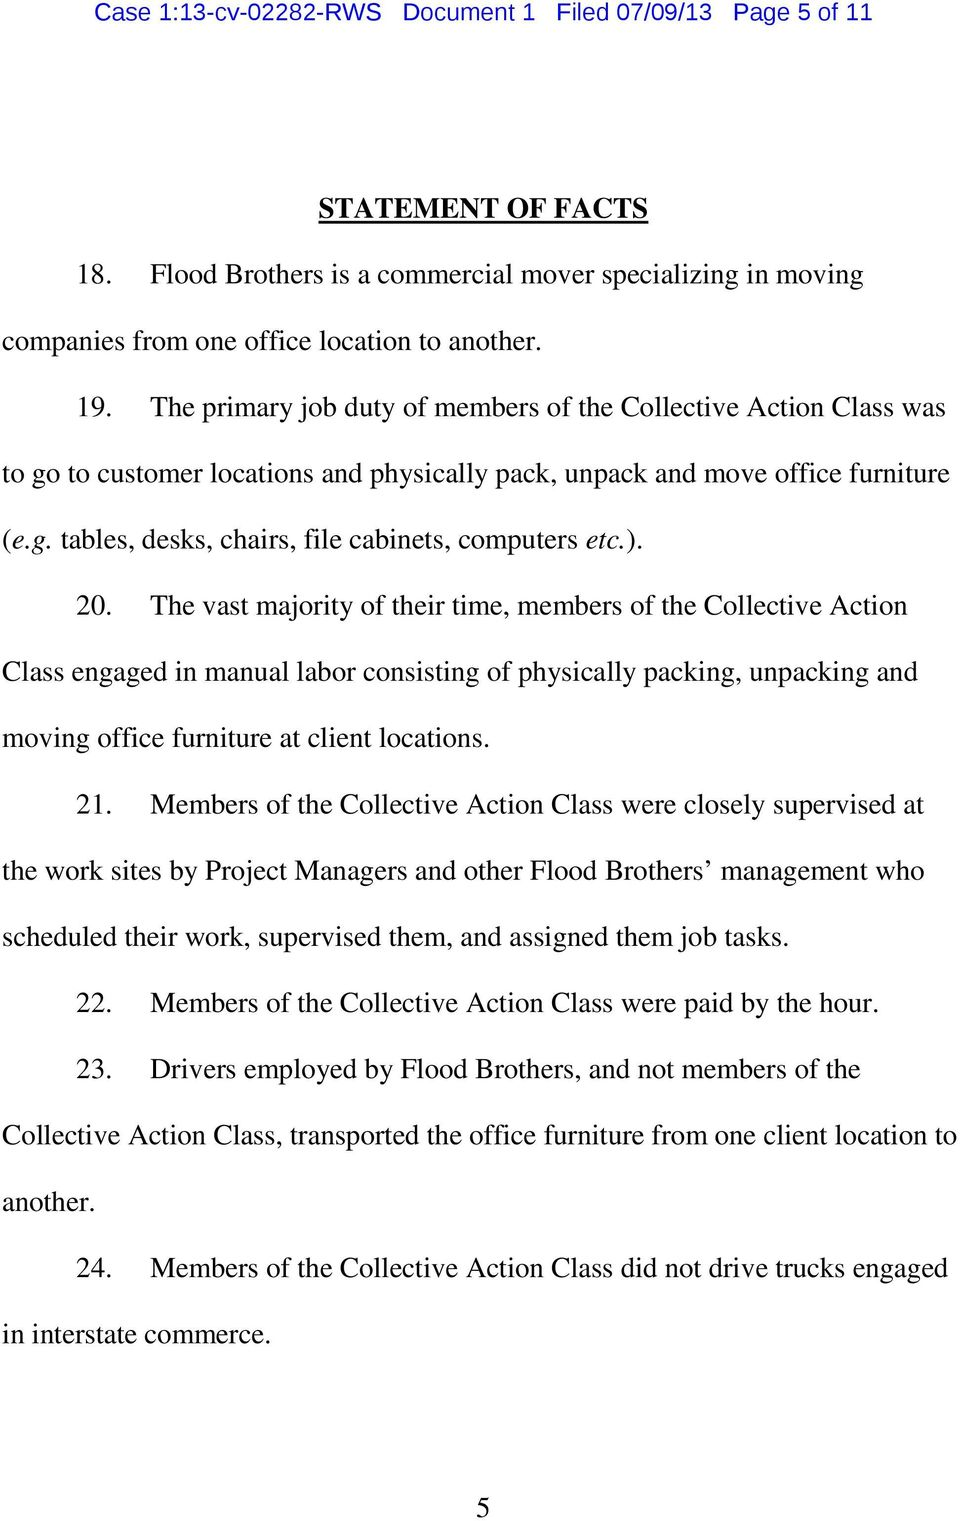 ). 20. The vast majority of their time, members of the Collective Action Class engaged in manual labor consisting of physically packing, unpacking and moving office furniture at client locations. 21.